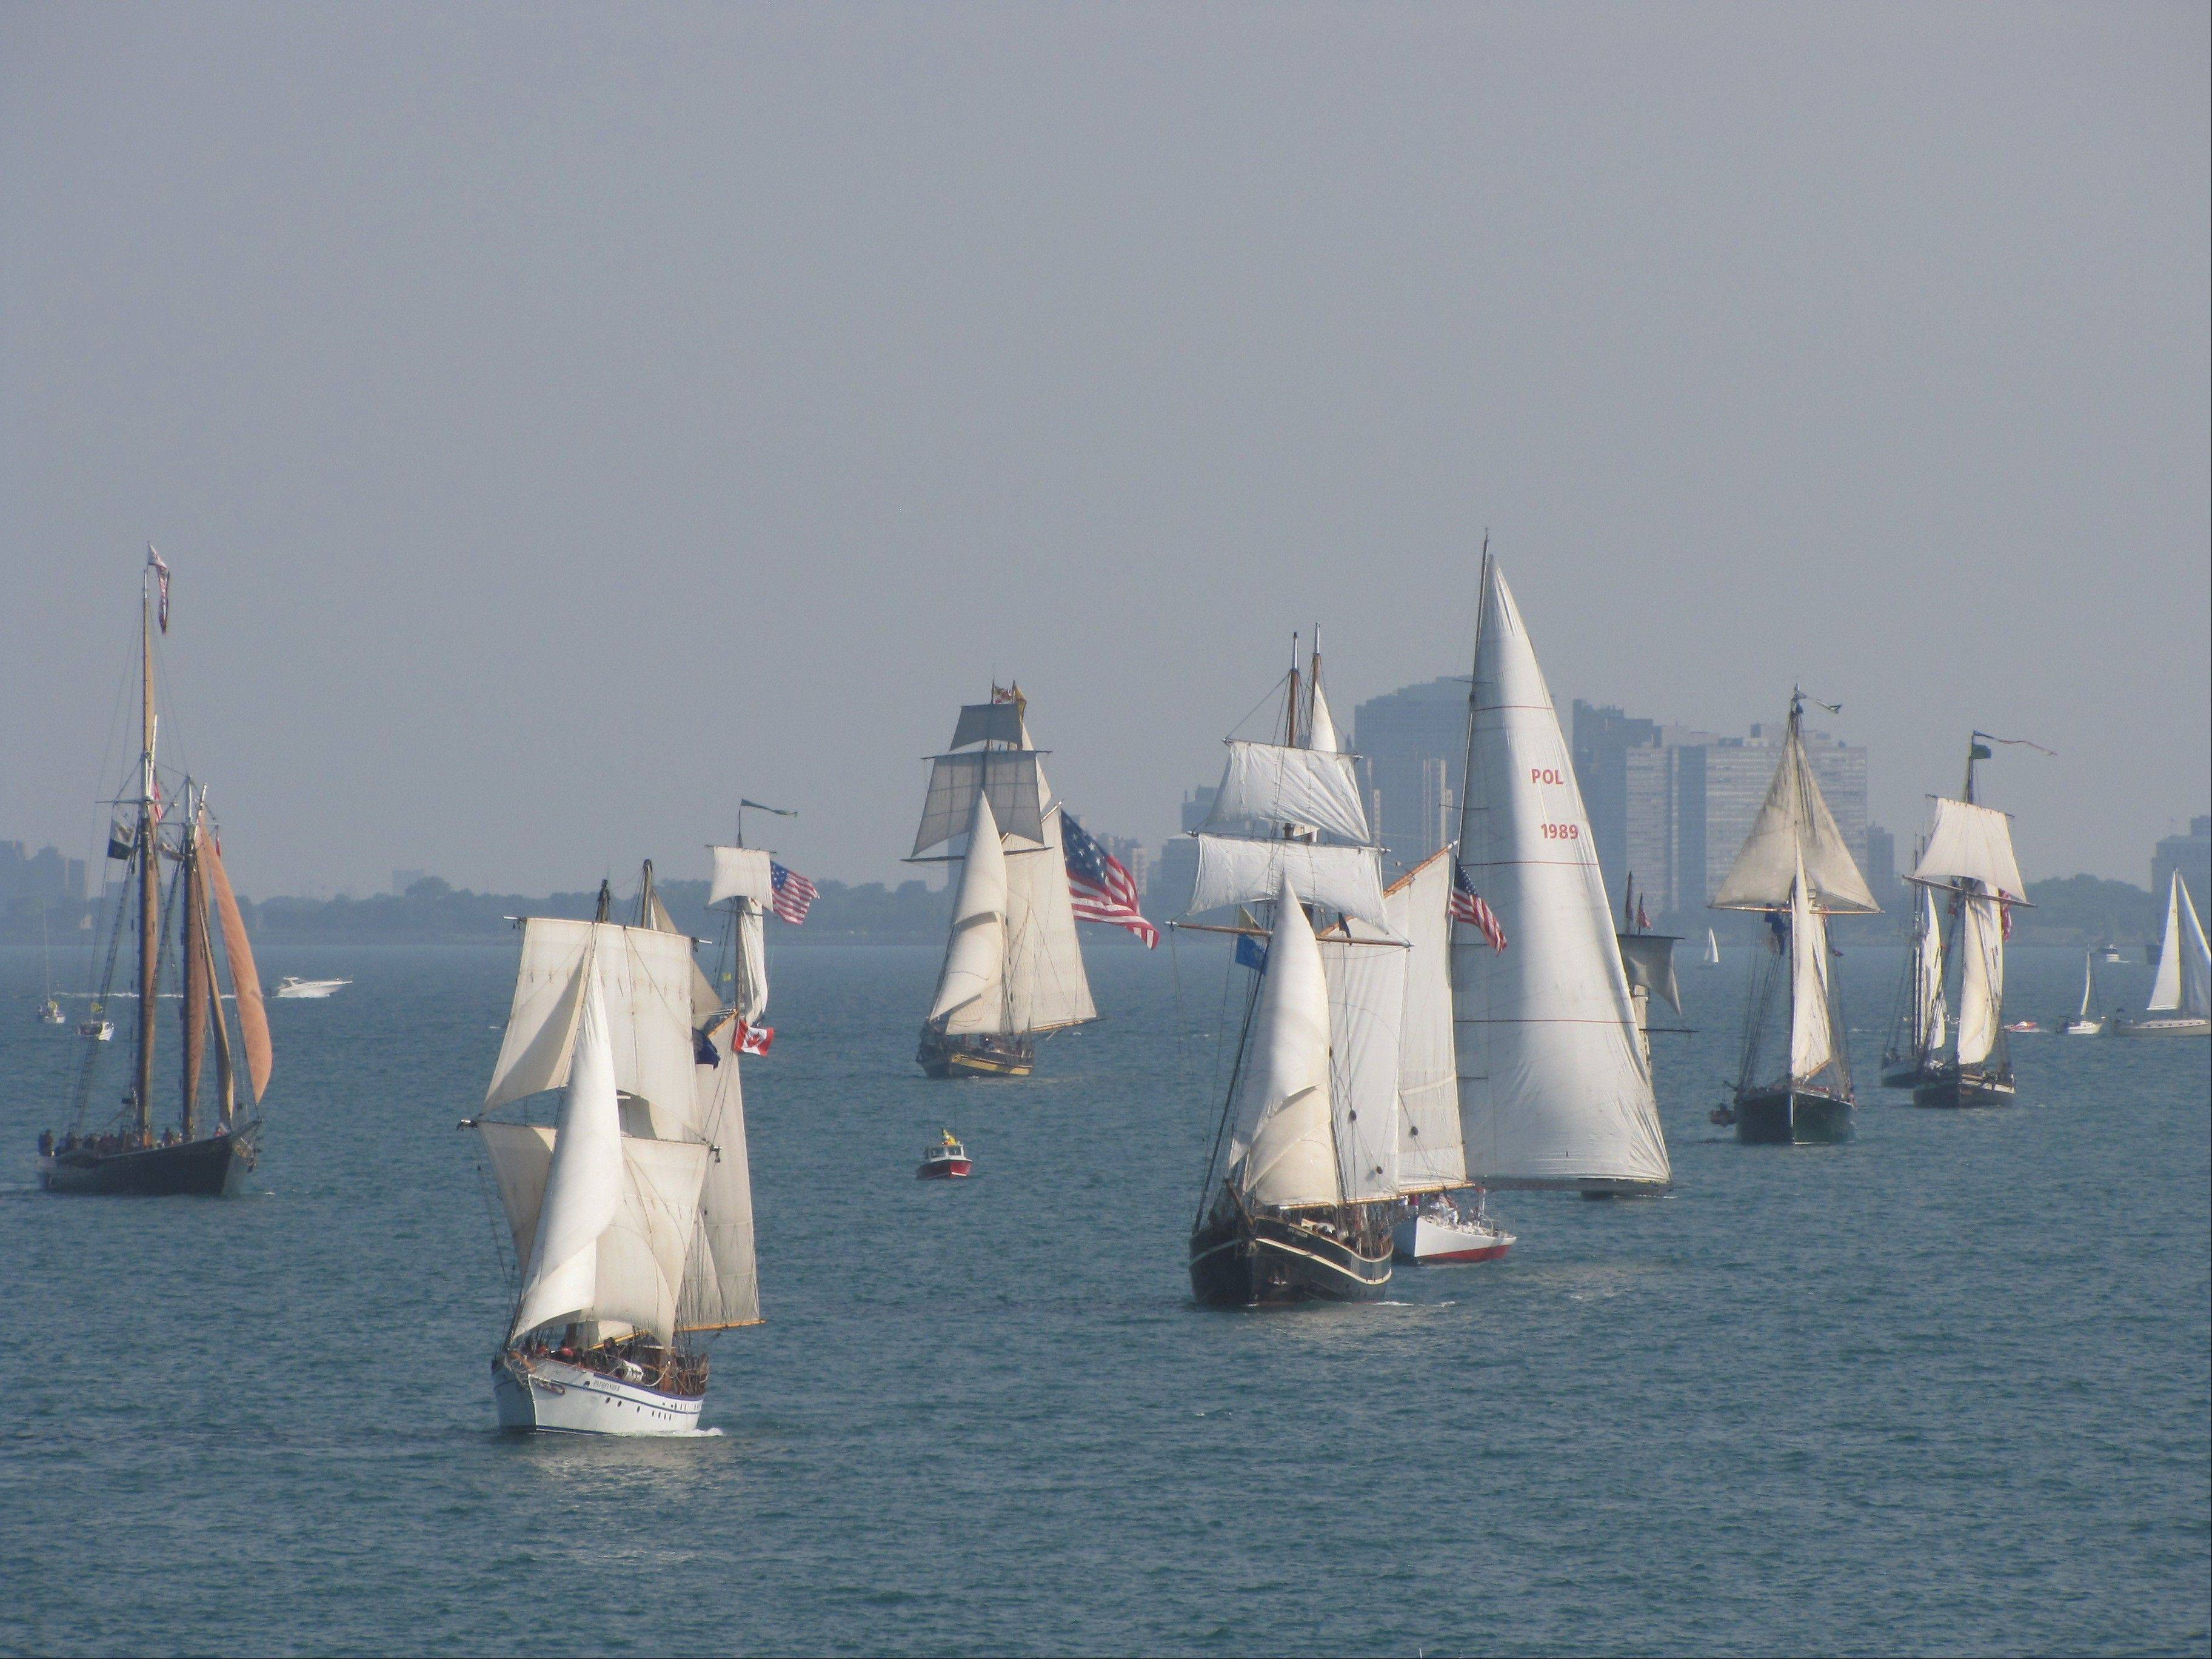 The Parade of Sail kicks off the five days of festivities at Navy Pier.